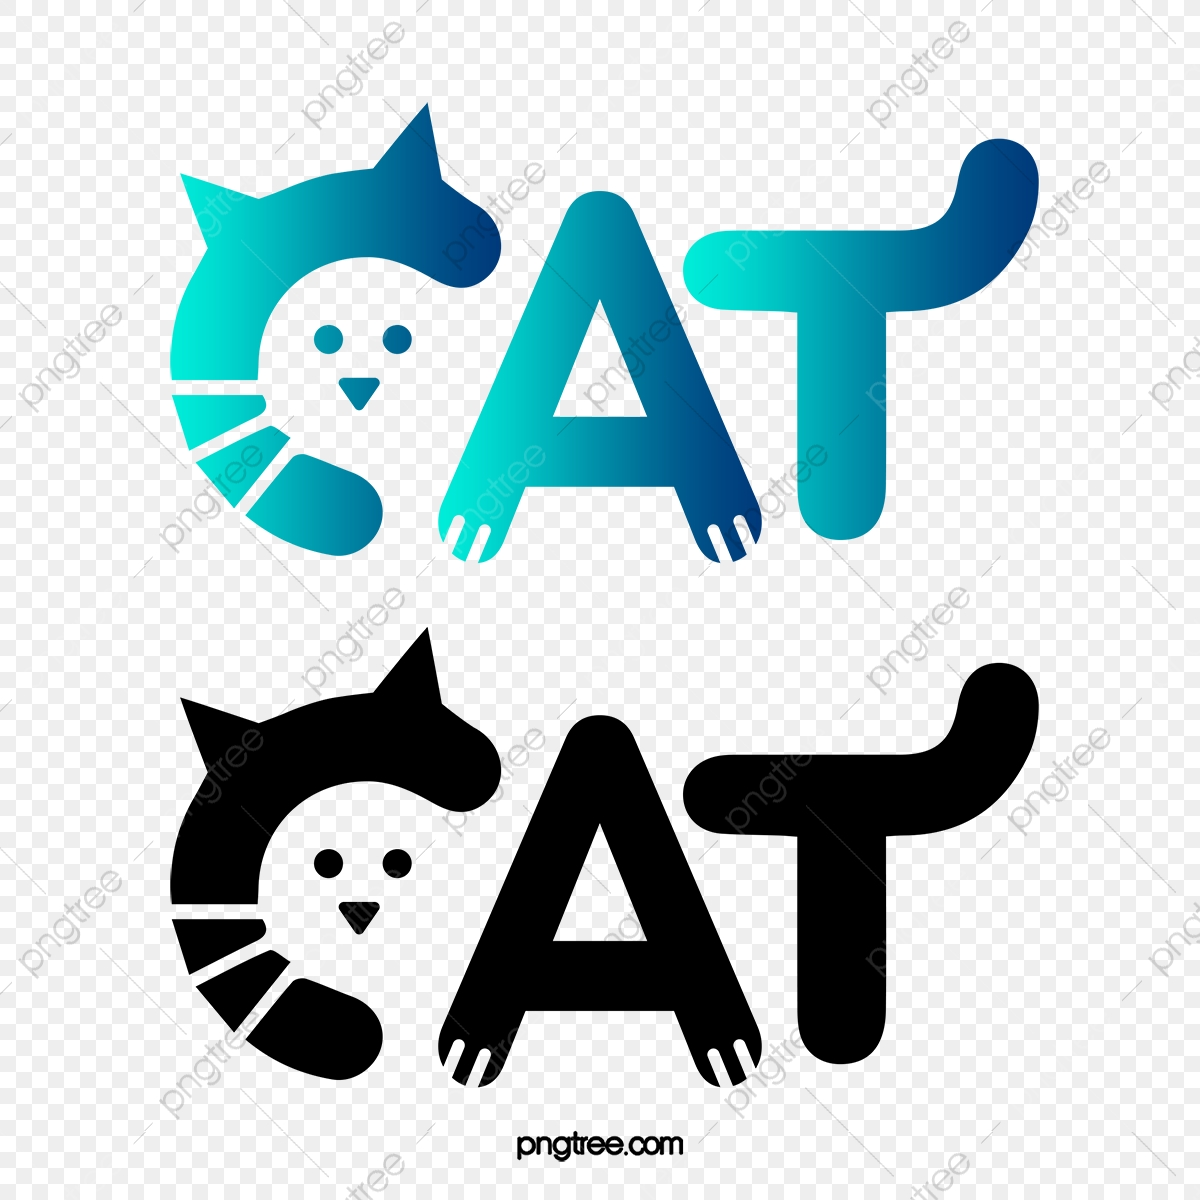 Cat Logo Vector Cat Logo Creative Cat Logo Animal Logo Png Transparent Clipart Image And Psd File For Free Download